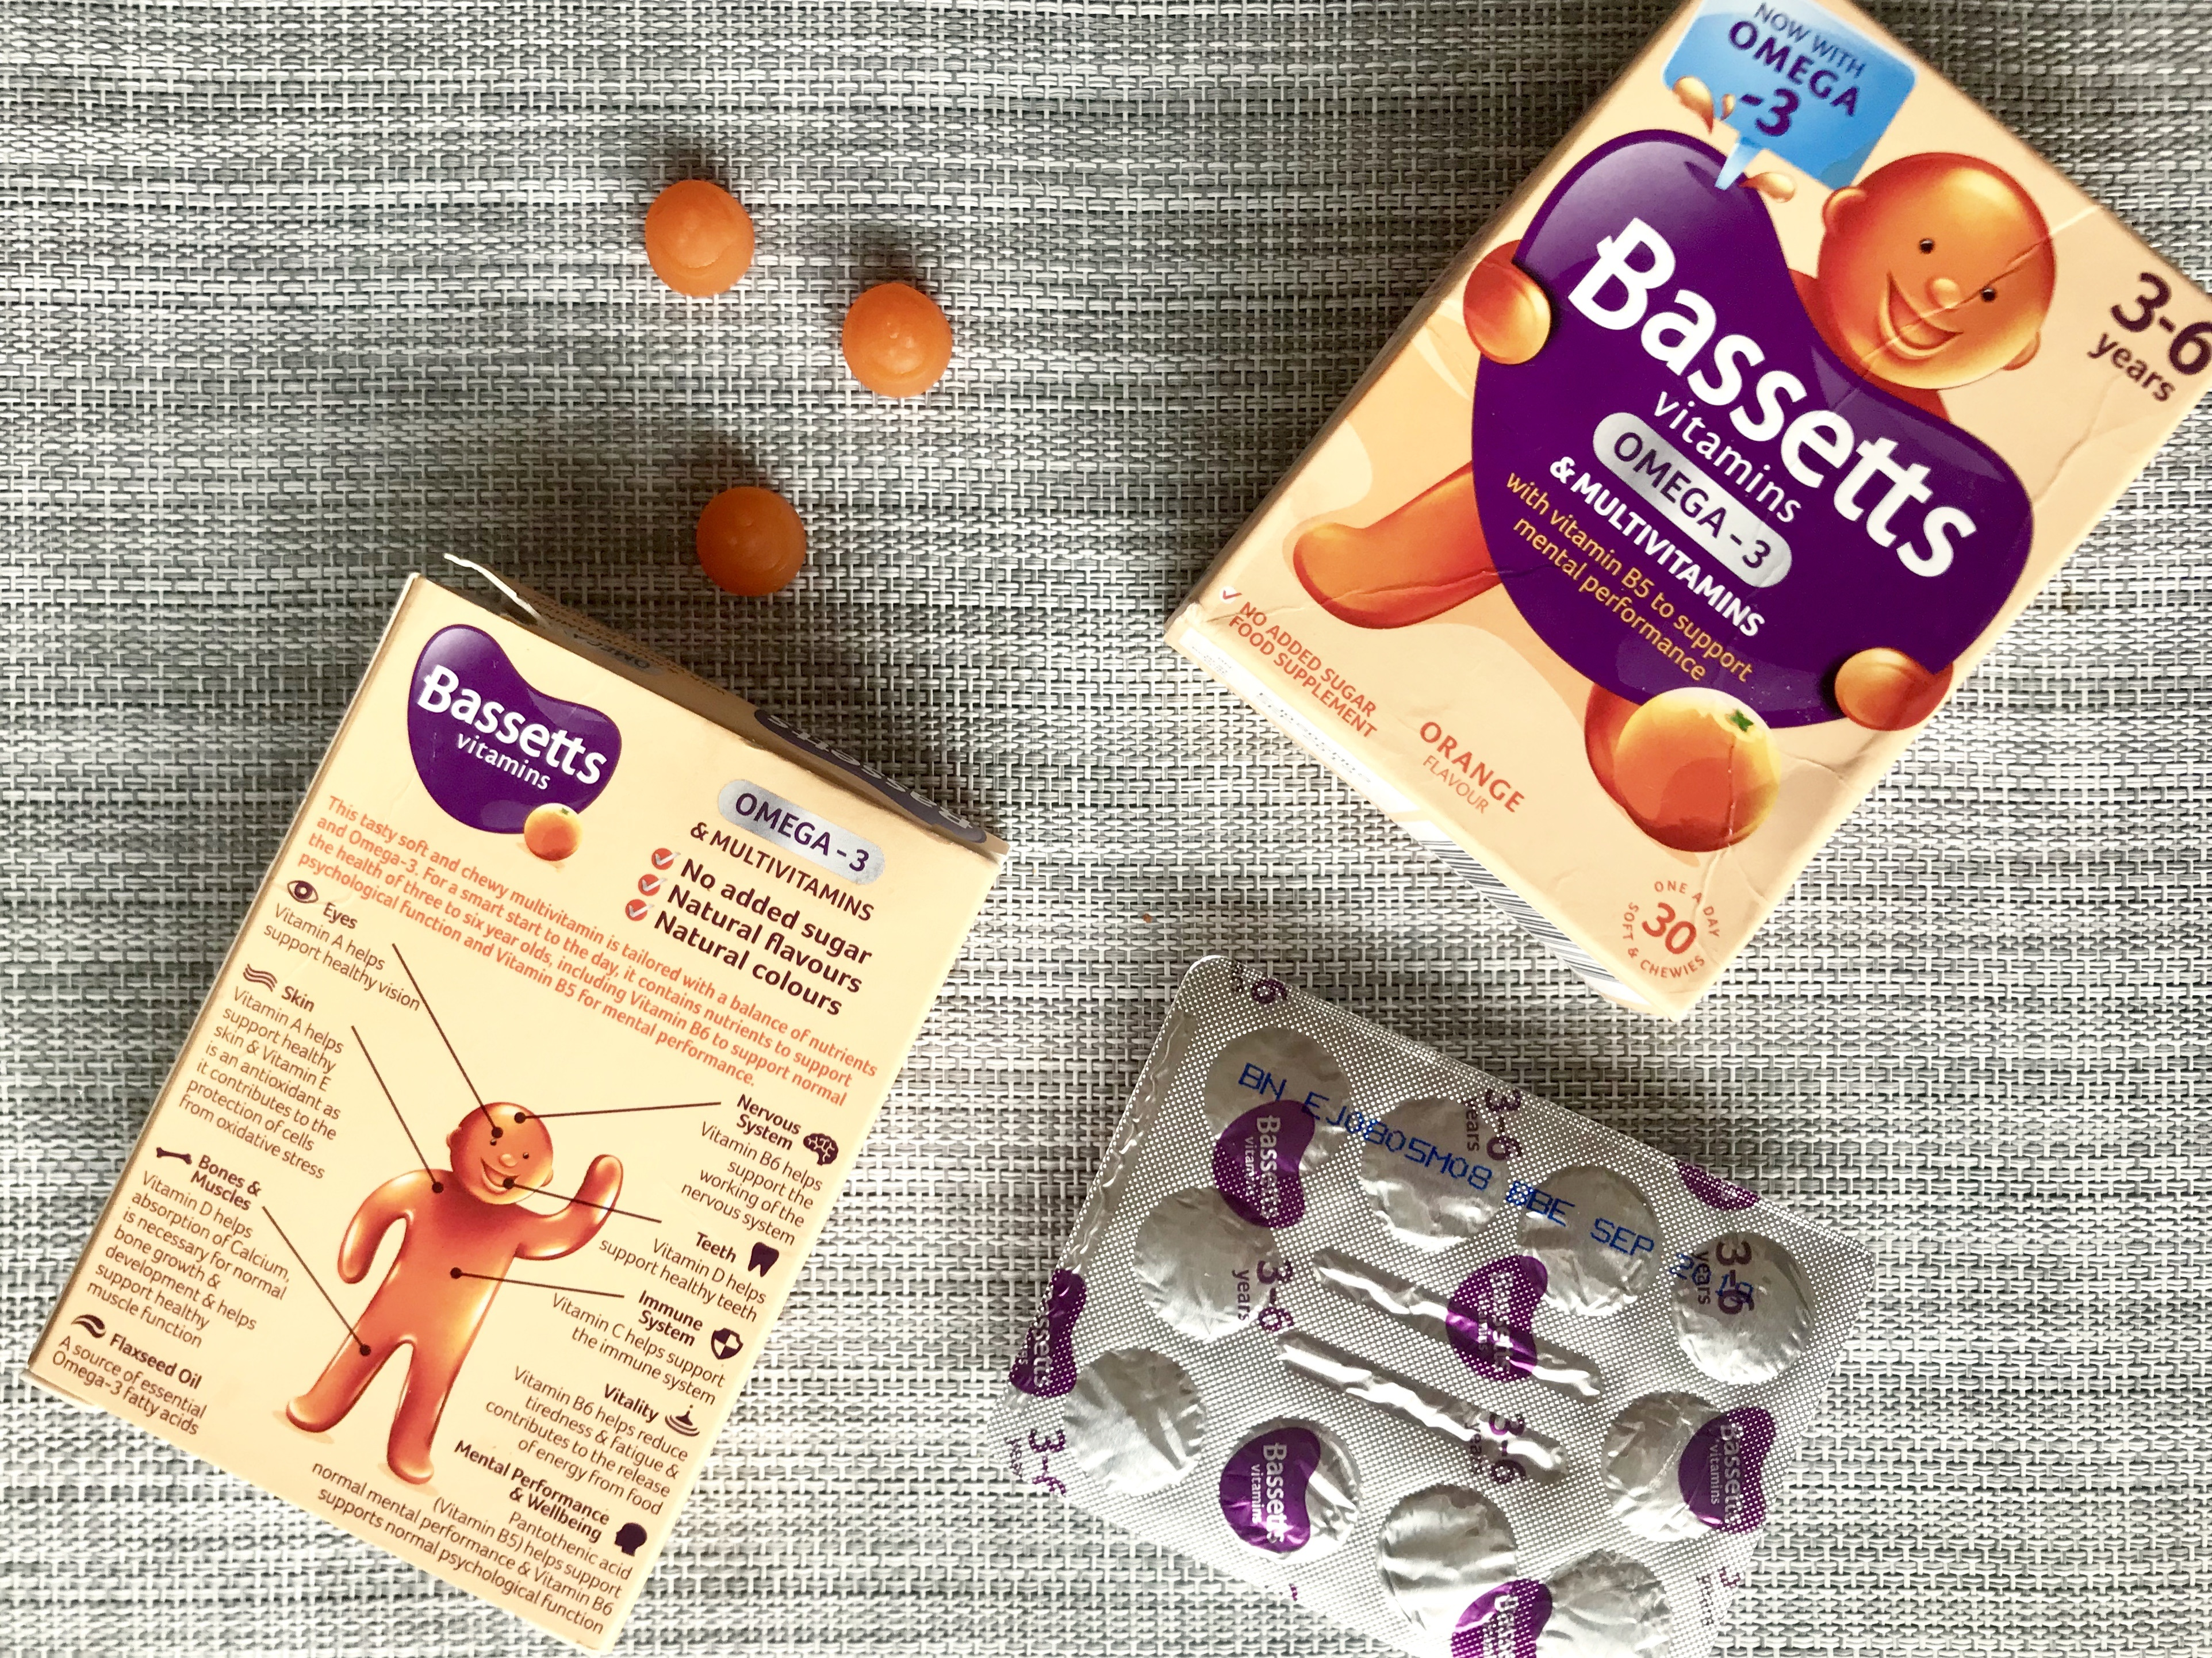 Six healthy steps to start the day – with Bassetts Vitamins Omega-3 + Multivitamins Orange Flavour Pastilles